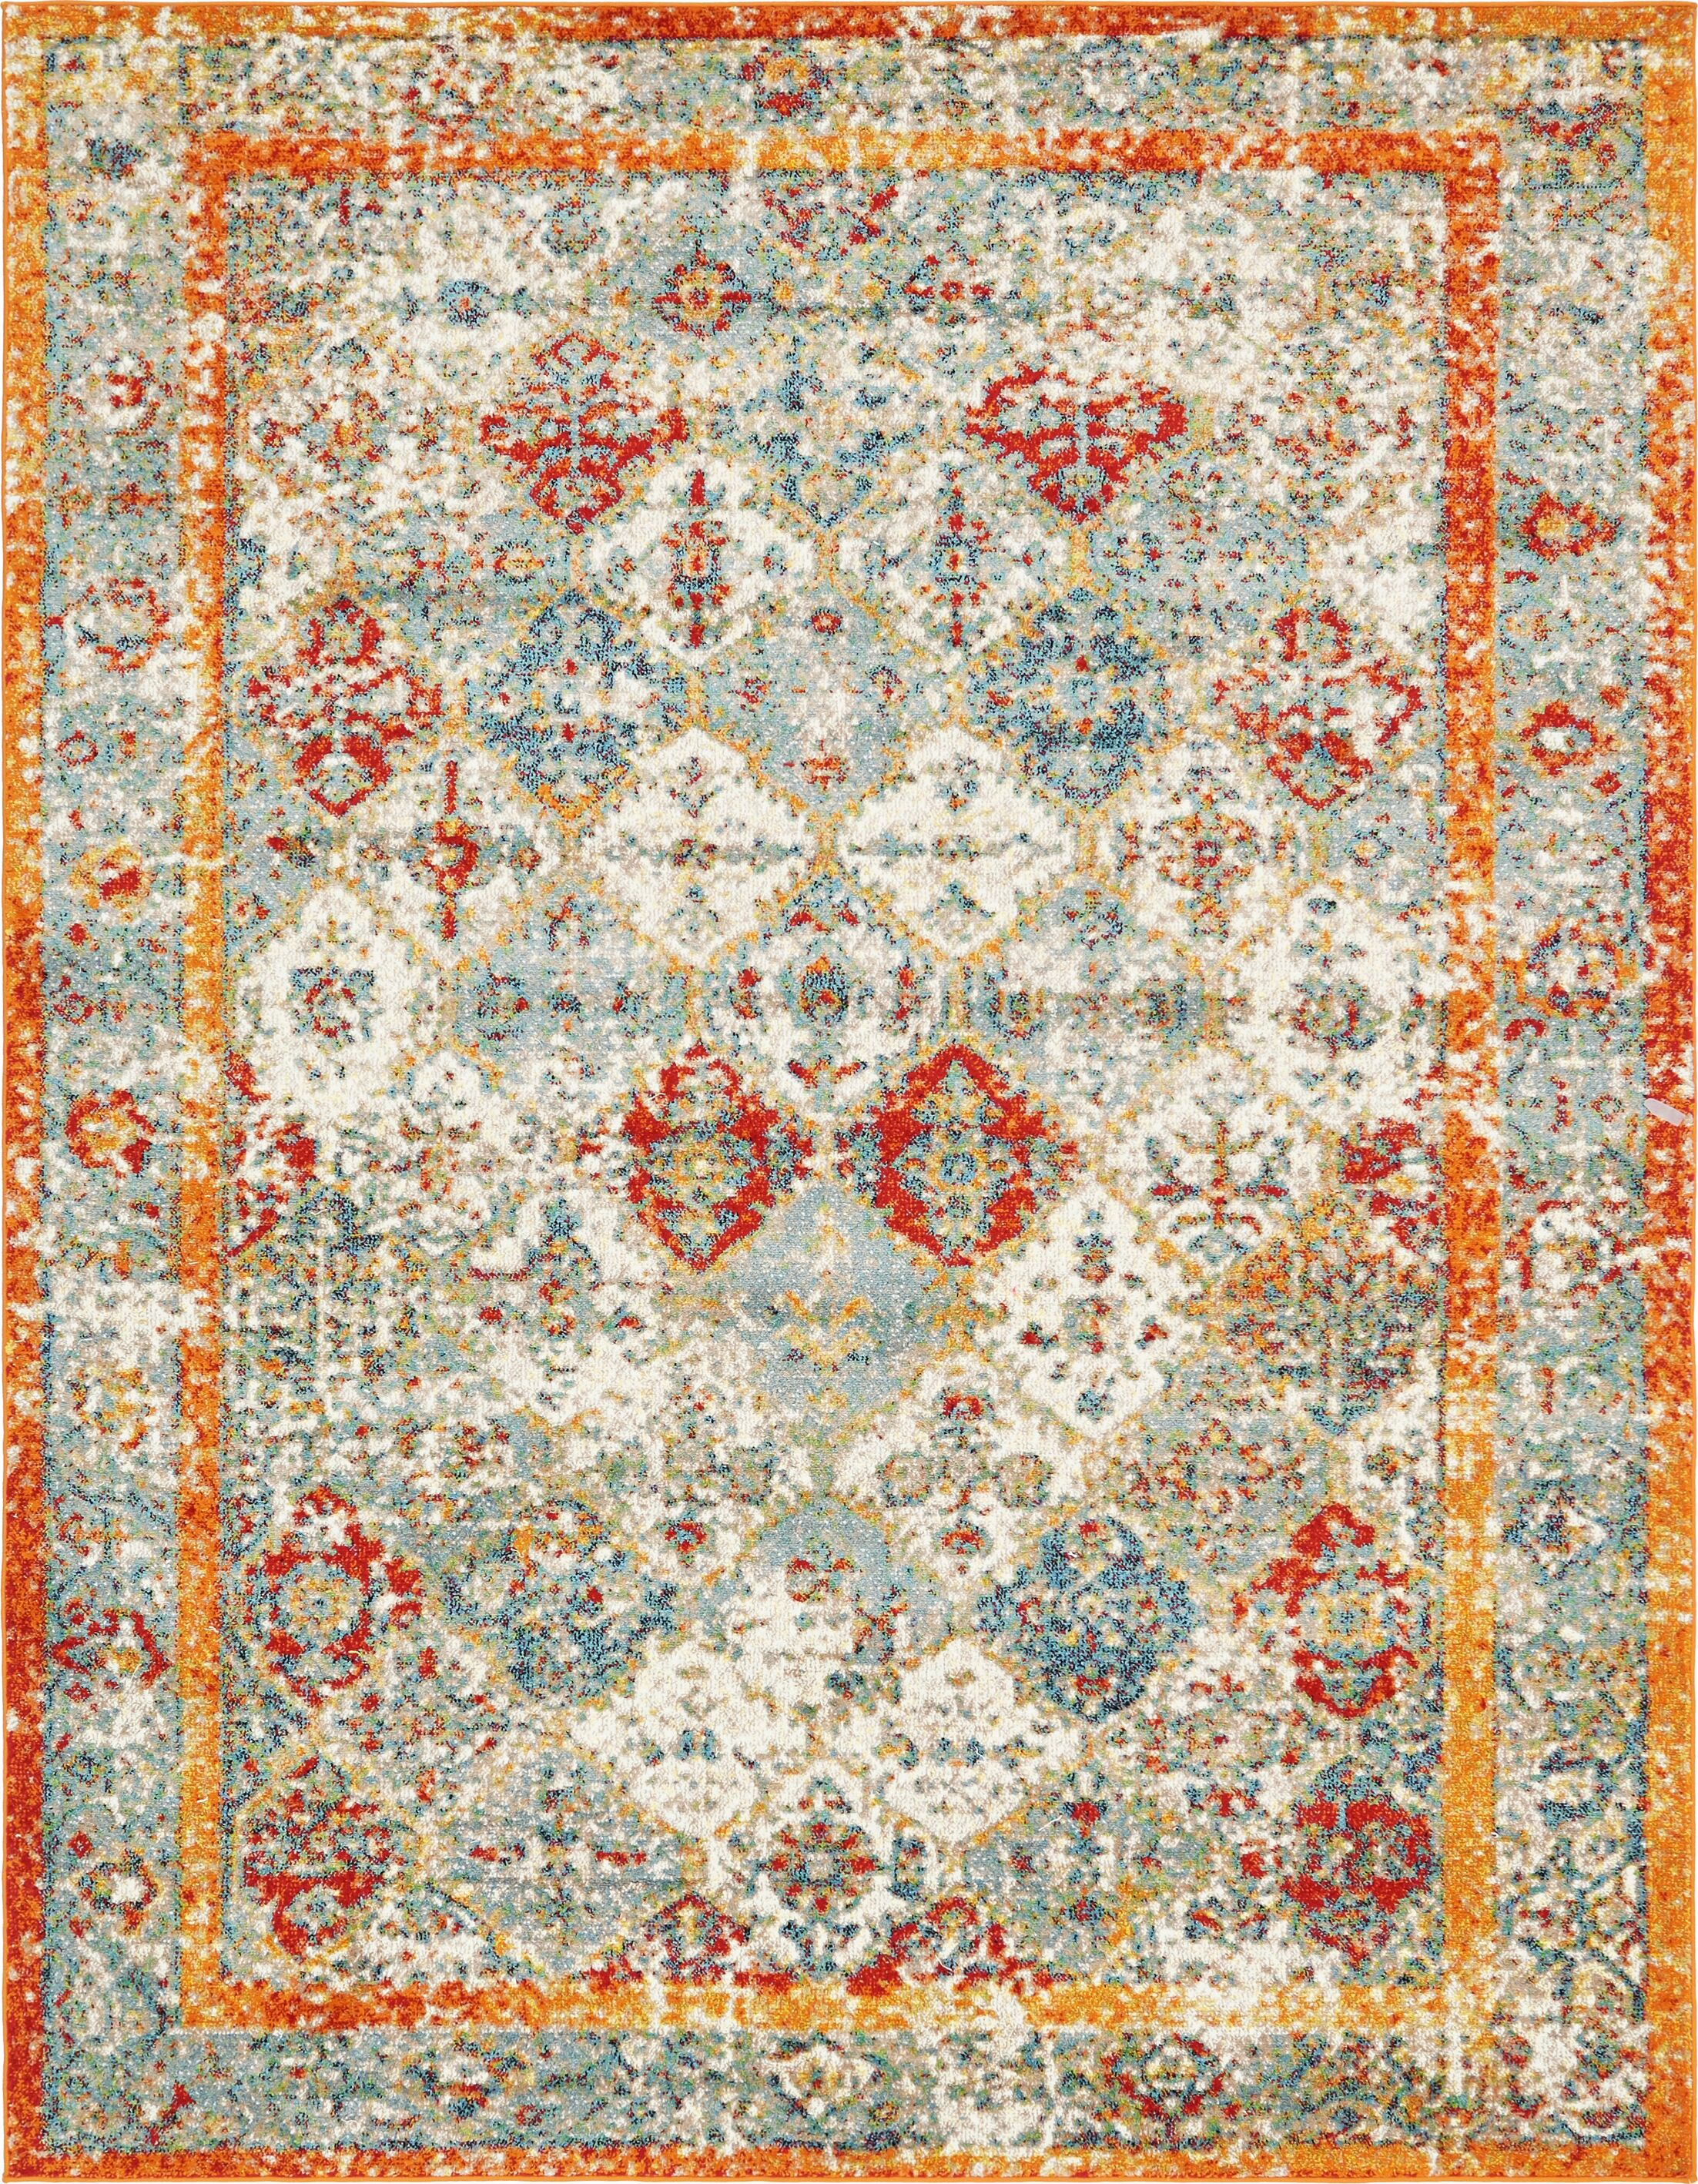 Hartell Stain Resistant Beige Area Rug Rug Size: Rectangle 8' x 10'